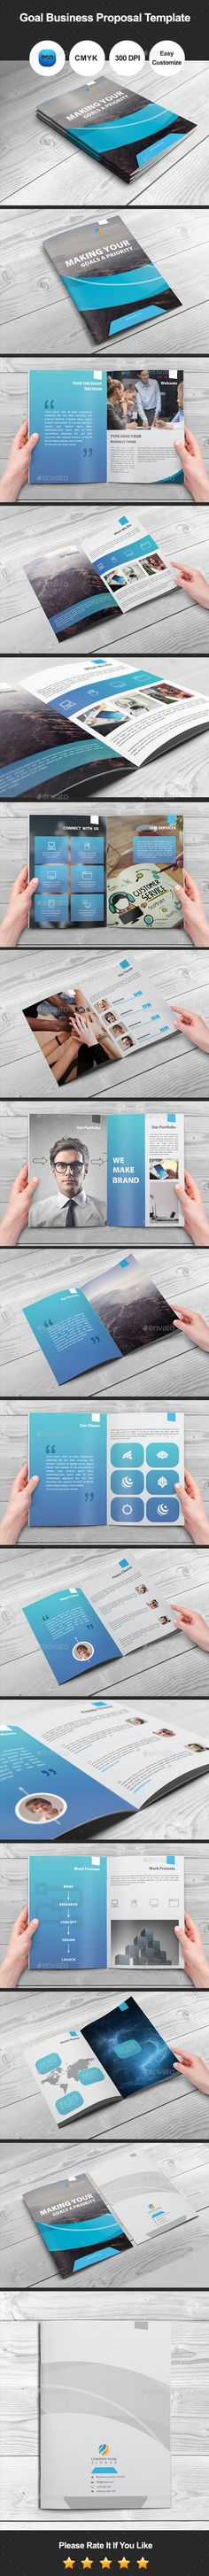 Business Proposal 2016 Keynote Presentation Template Business - advertising proposal template